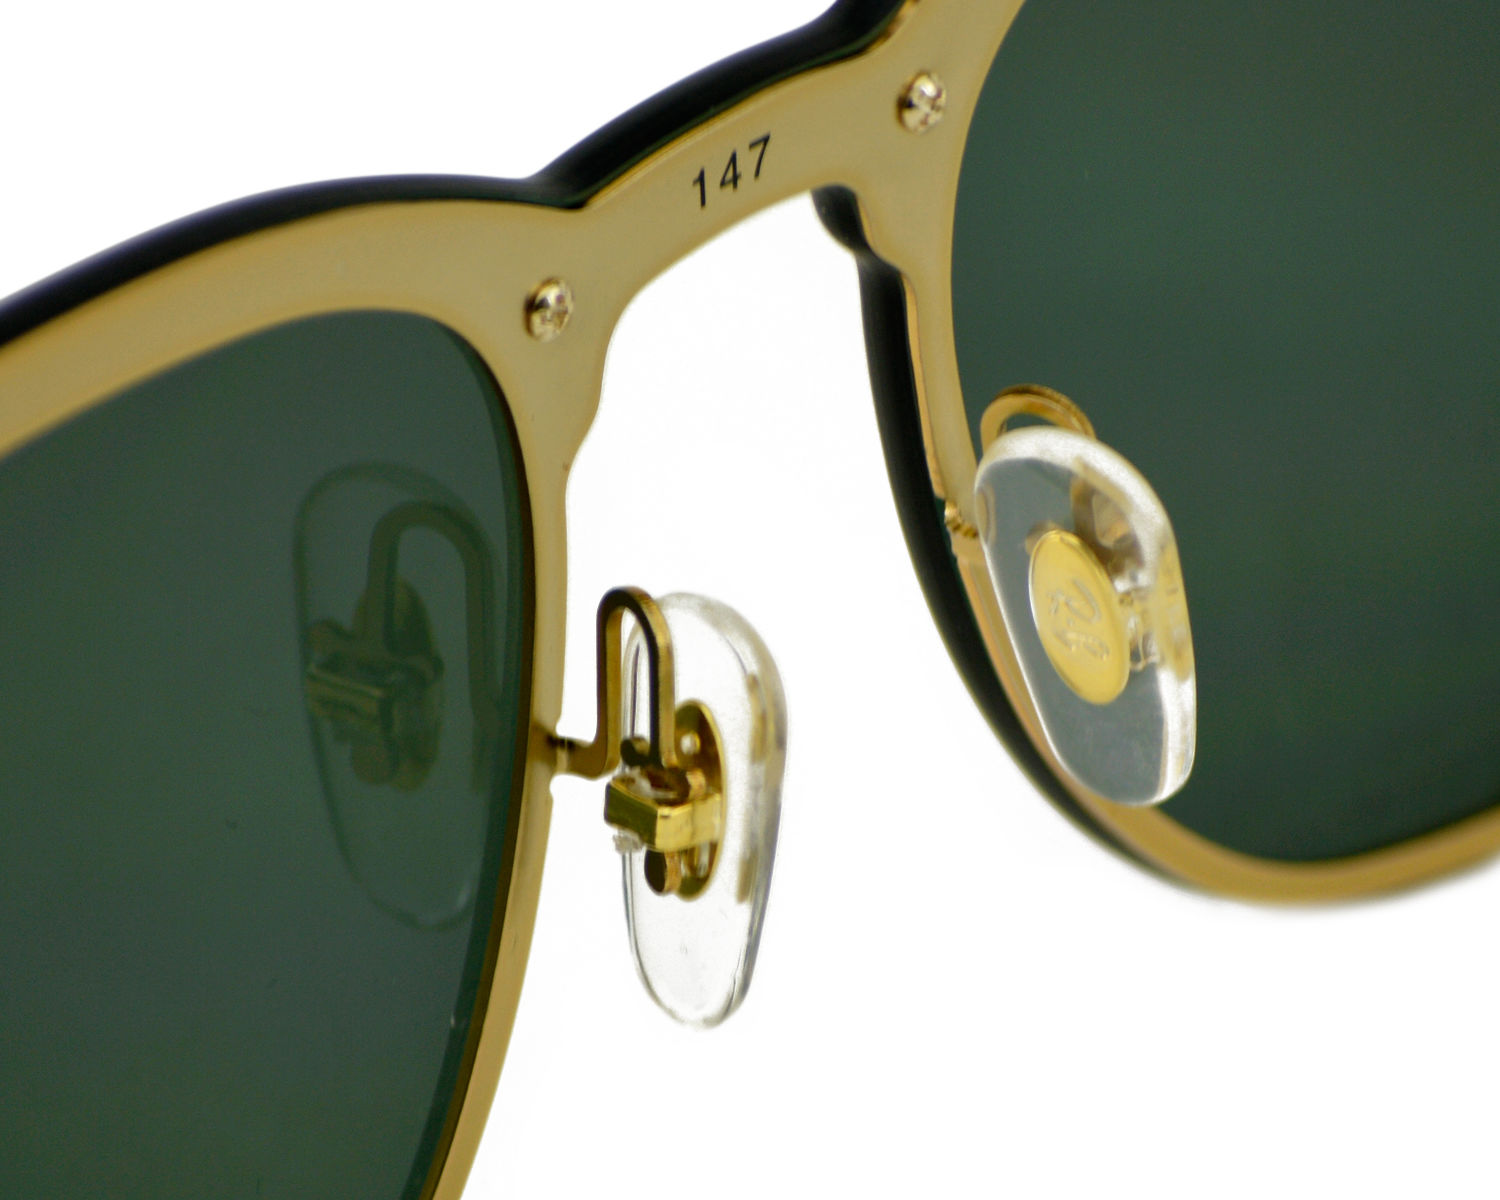 a63538c9fd213 Ray-Ban RB3576N Blaze Clubmaster 043 71 Gold Frame Green Classic Lenses  Unisex Sunglasses 47mm